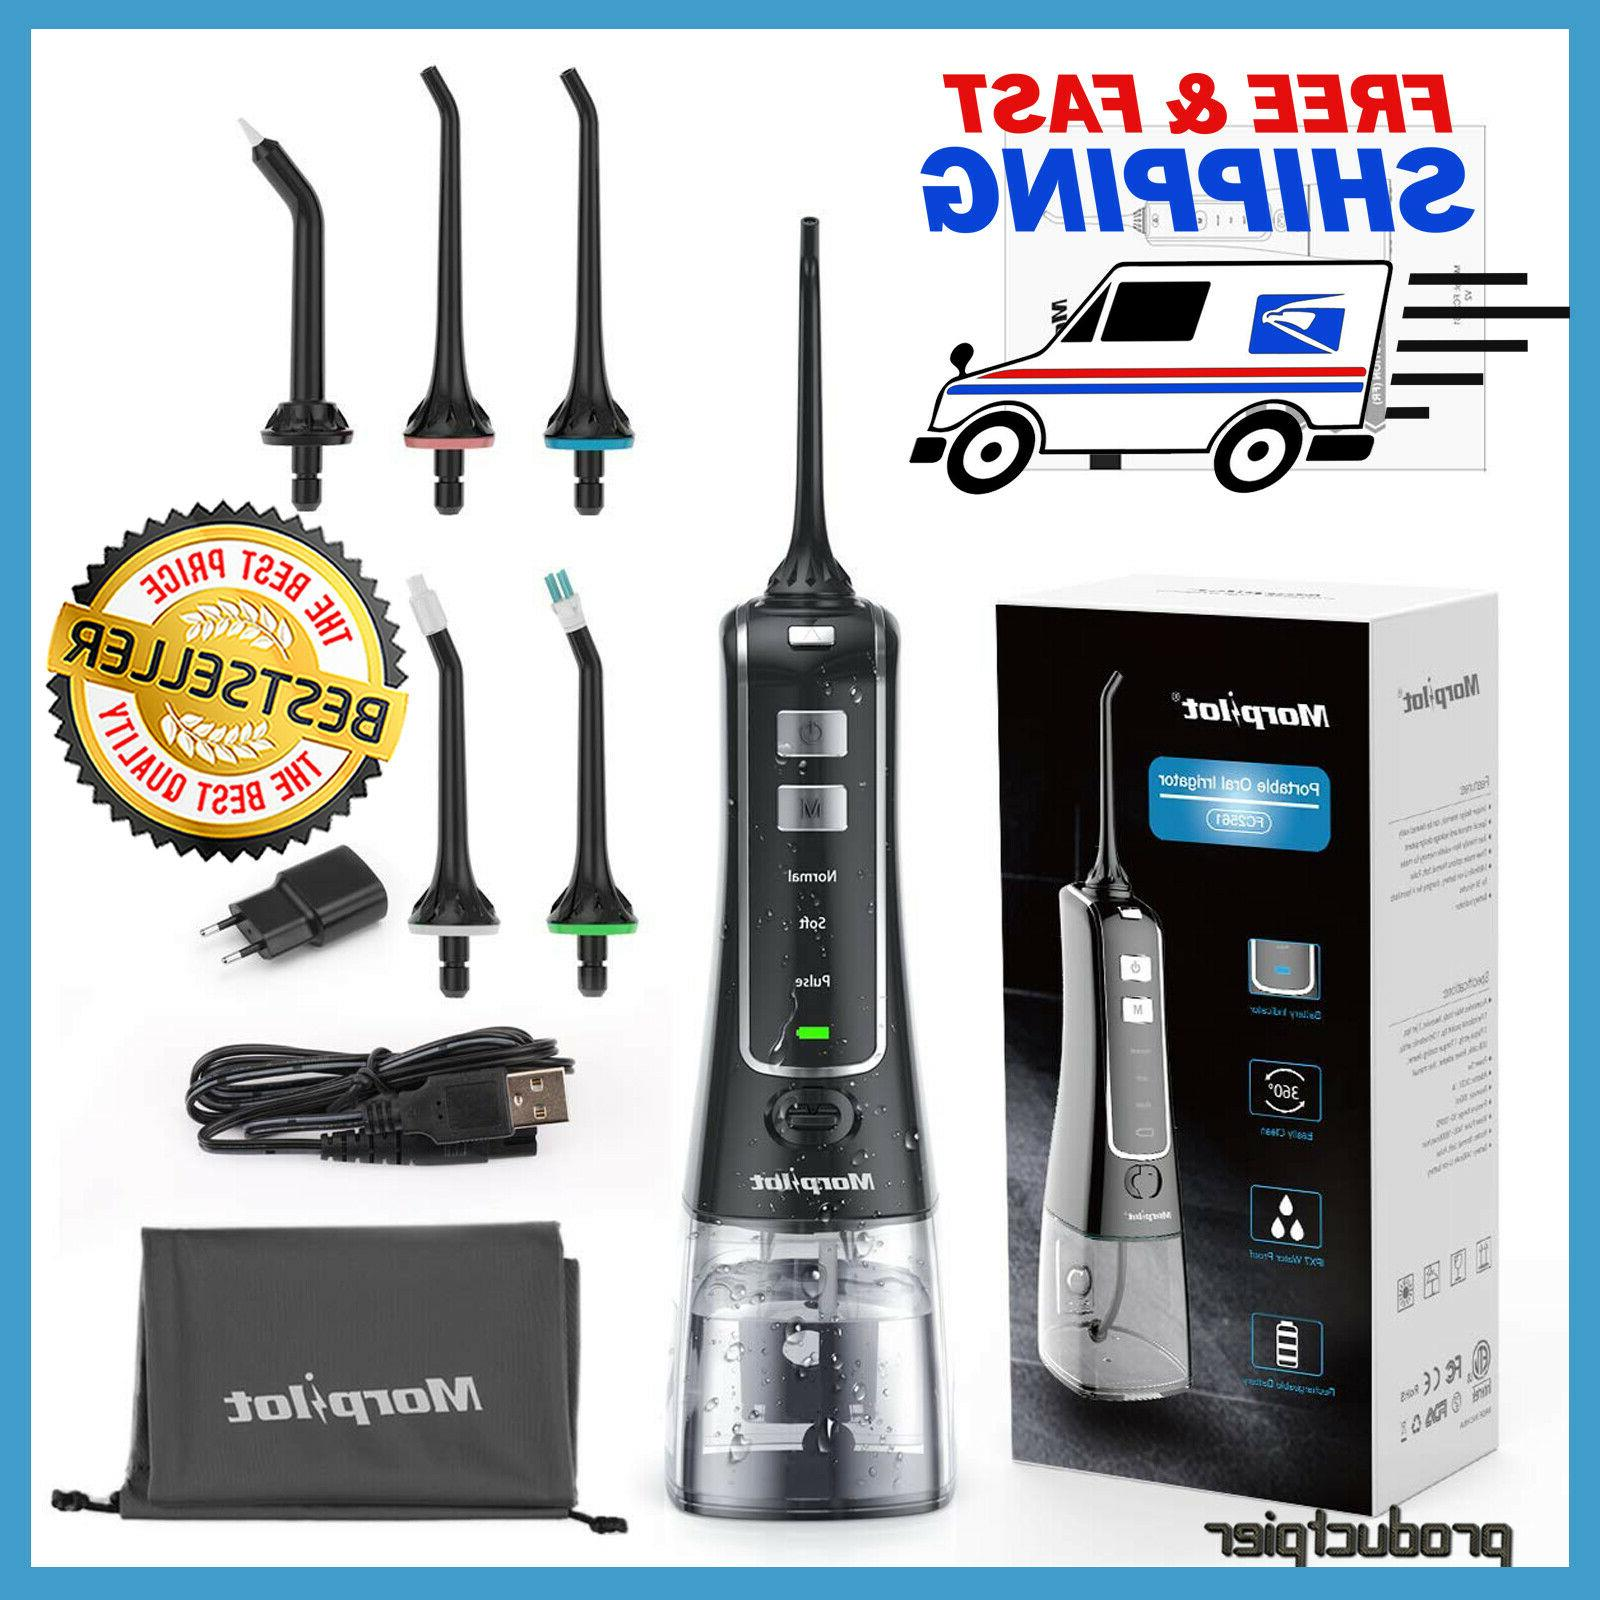 Best Cordless Rechargeable Portable f/ Travel